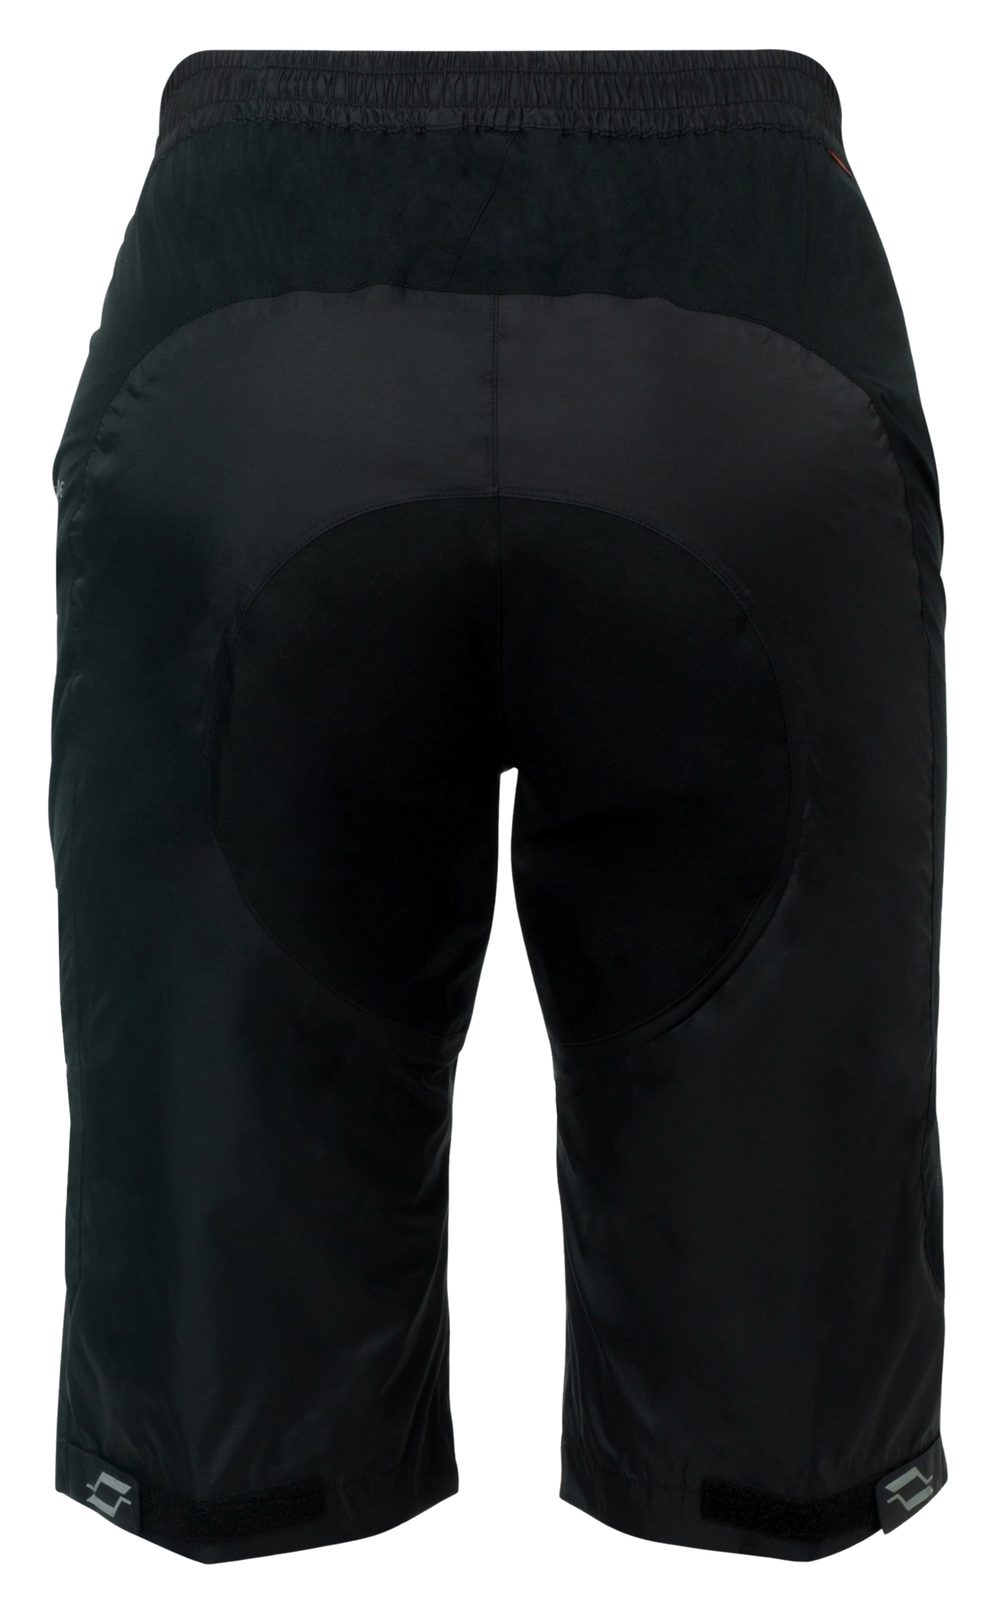 VAUDE Women´s Spray Shorts II black Größe 36 - schneider-sports